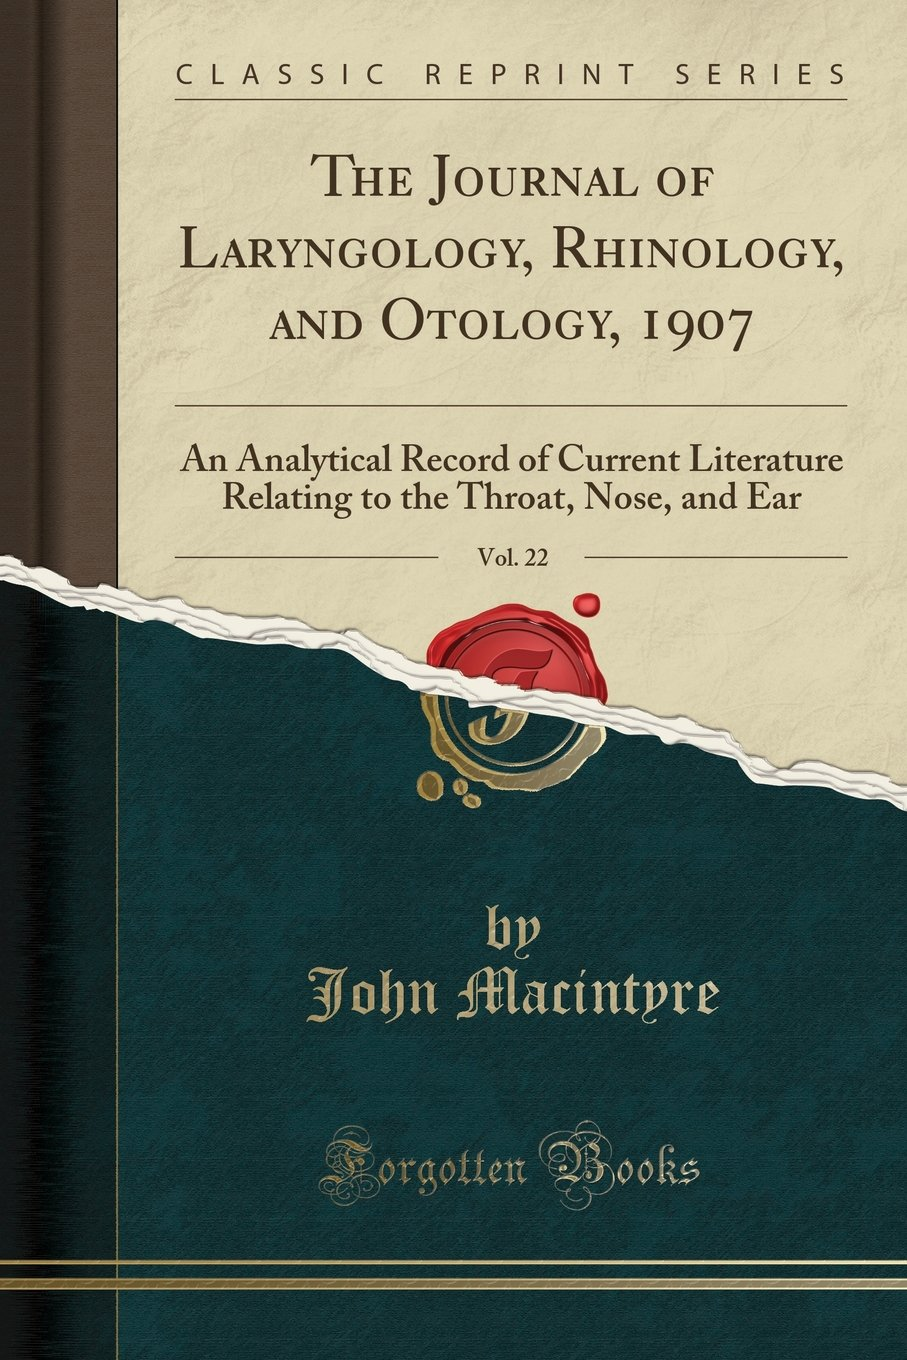 The Journal of Laryngology, Rhinology, and Otology, 1907, Vol. 22: An Analytical Record of Current Literature Relating to the Throat, Nose, and Ear (Classic Reprint) PDF